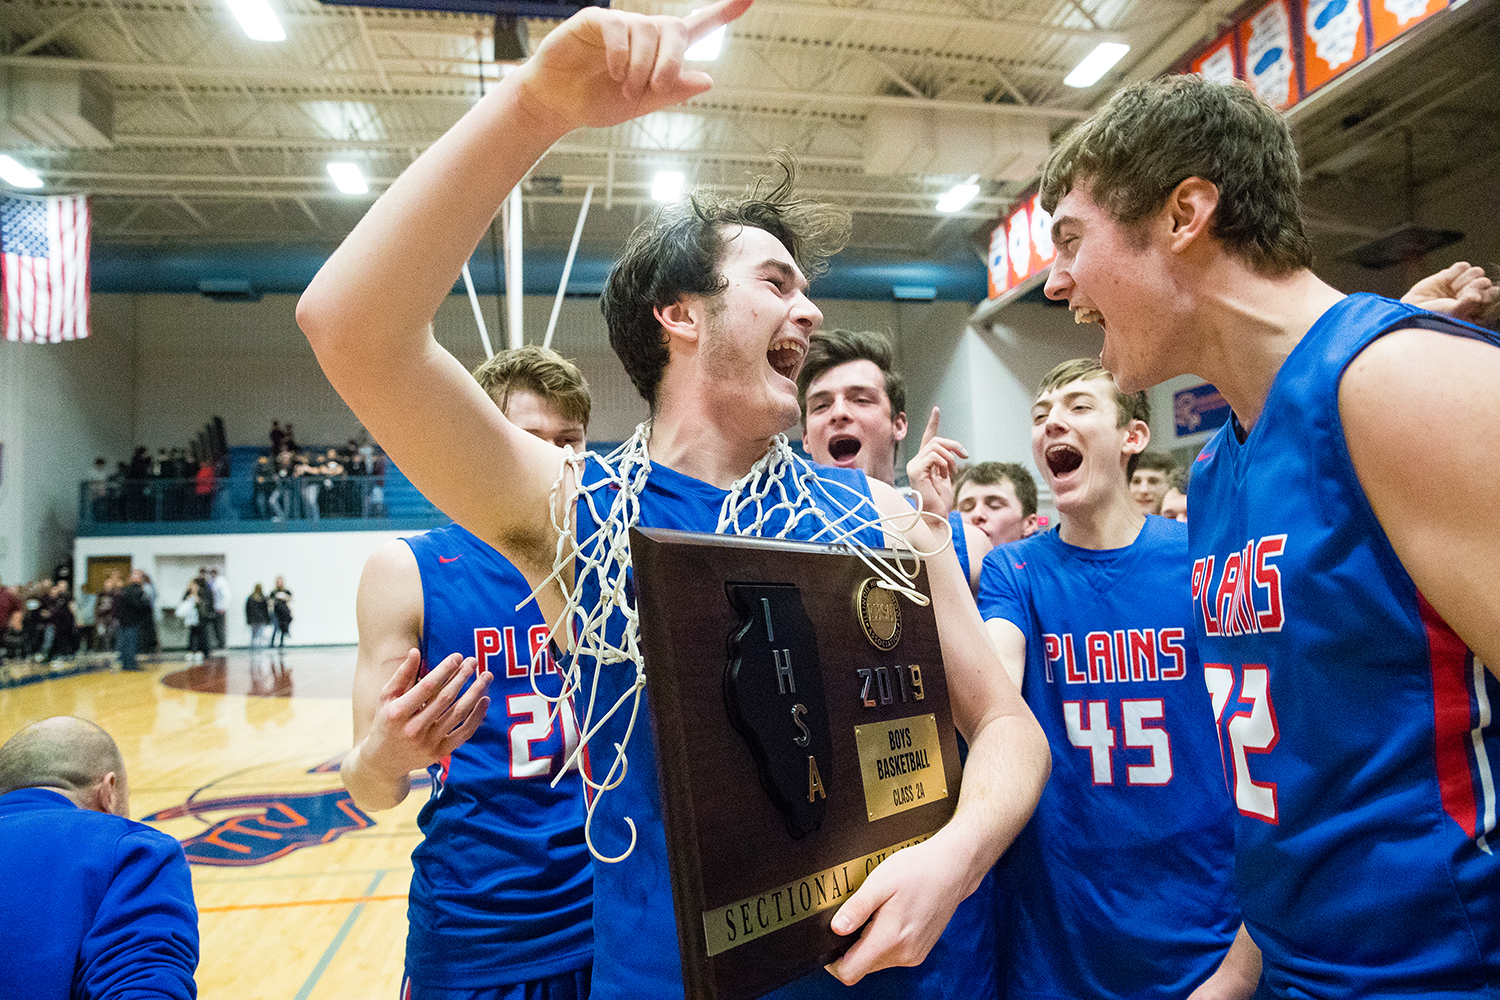 Pleasant Plains' Chase Schmitt celebrates with his teammates after the Cardinals defeated Tremont 61-41 during the Boys Class 2A Riverton Sectional at Riverton High School Friday, March 1, 2019. [Ted Schurter/The State Journal-Register]